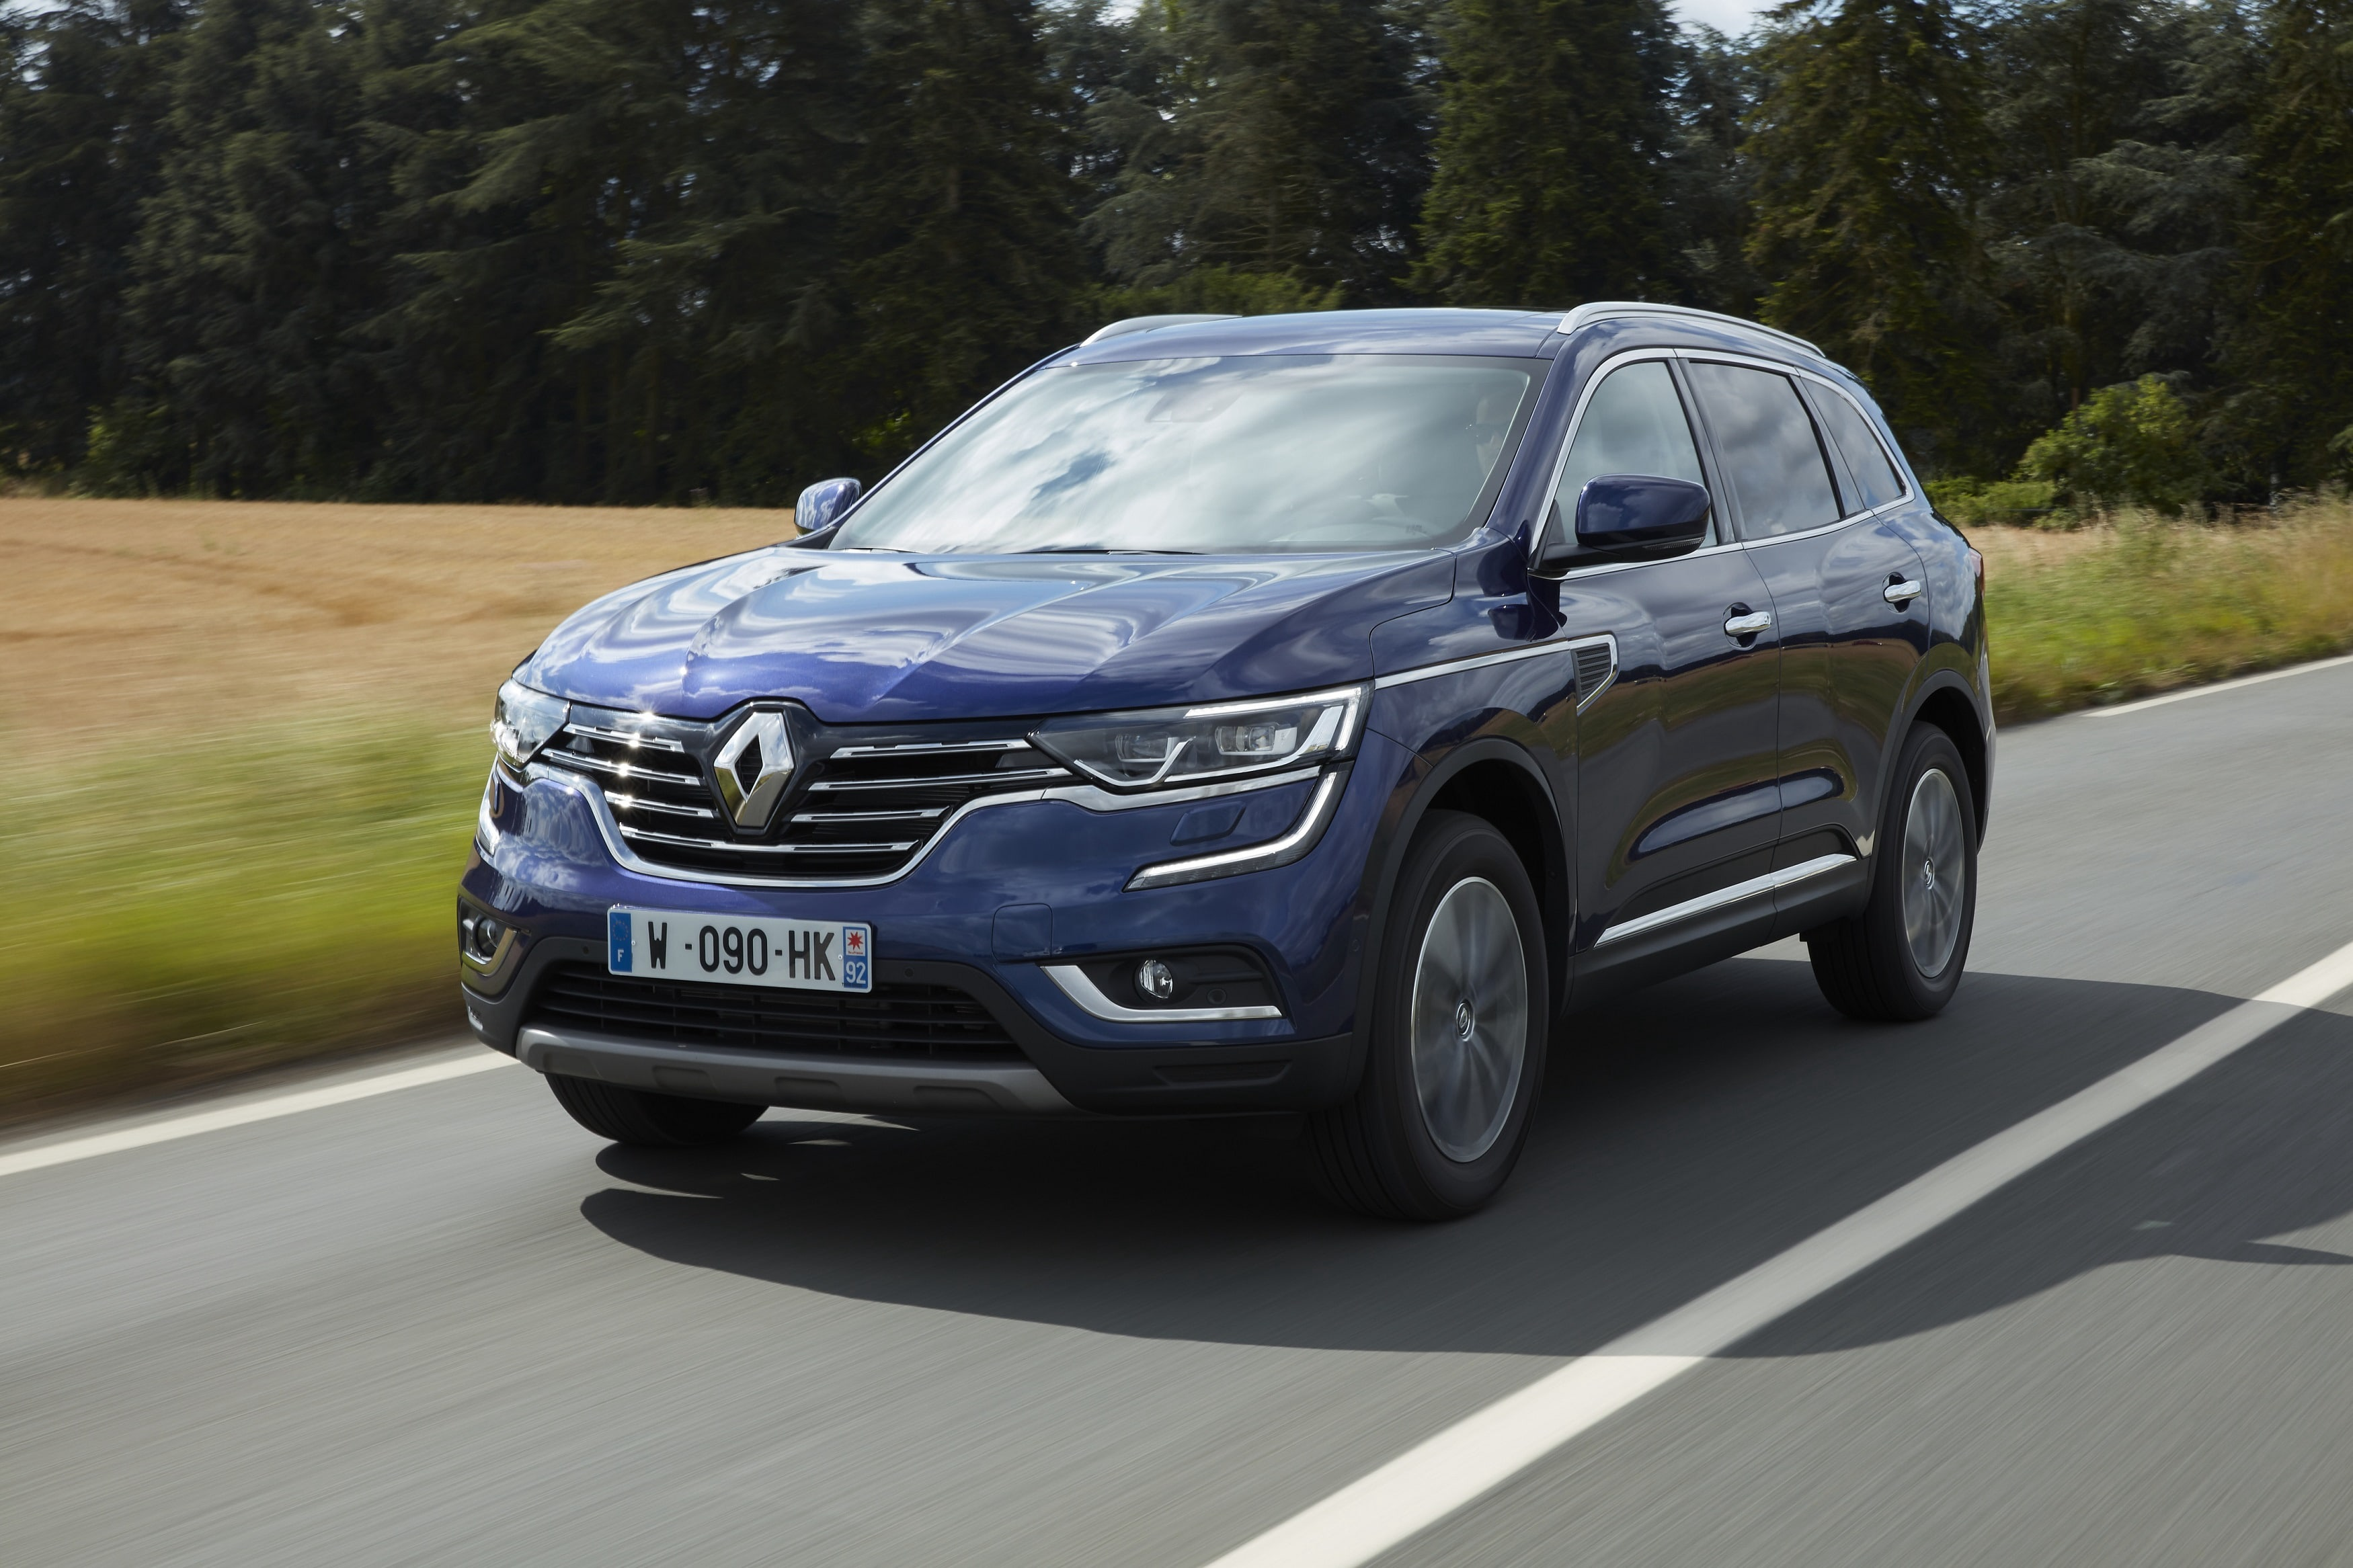 Renault Koleos 2 Wallpapers hd